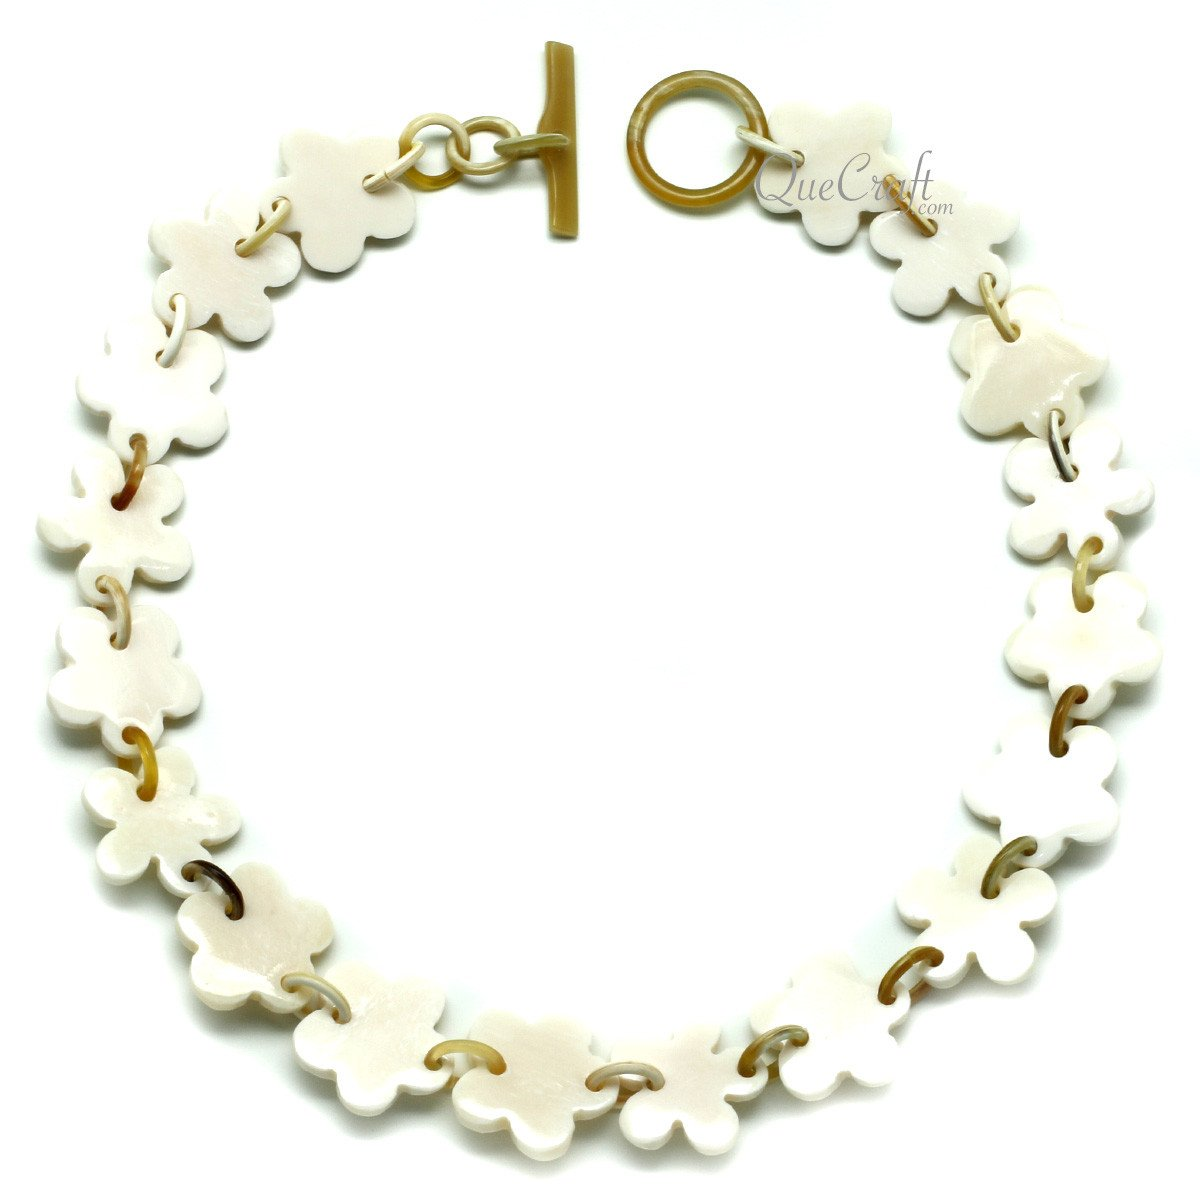 Bone & Horn Chain Necklace #11949 - HORN.JEWELRY by QueCraft